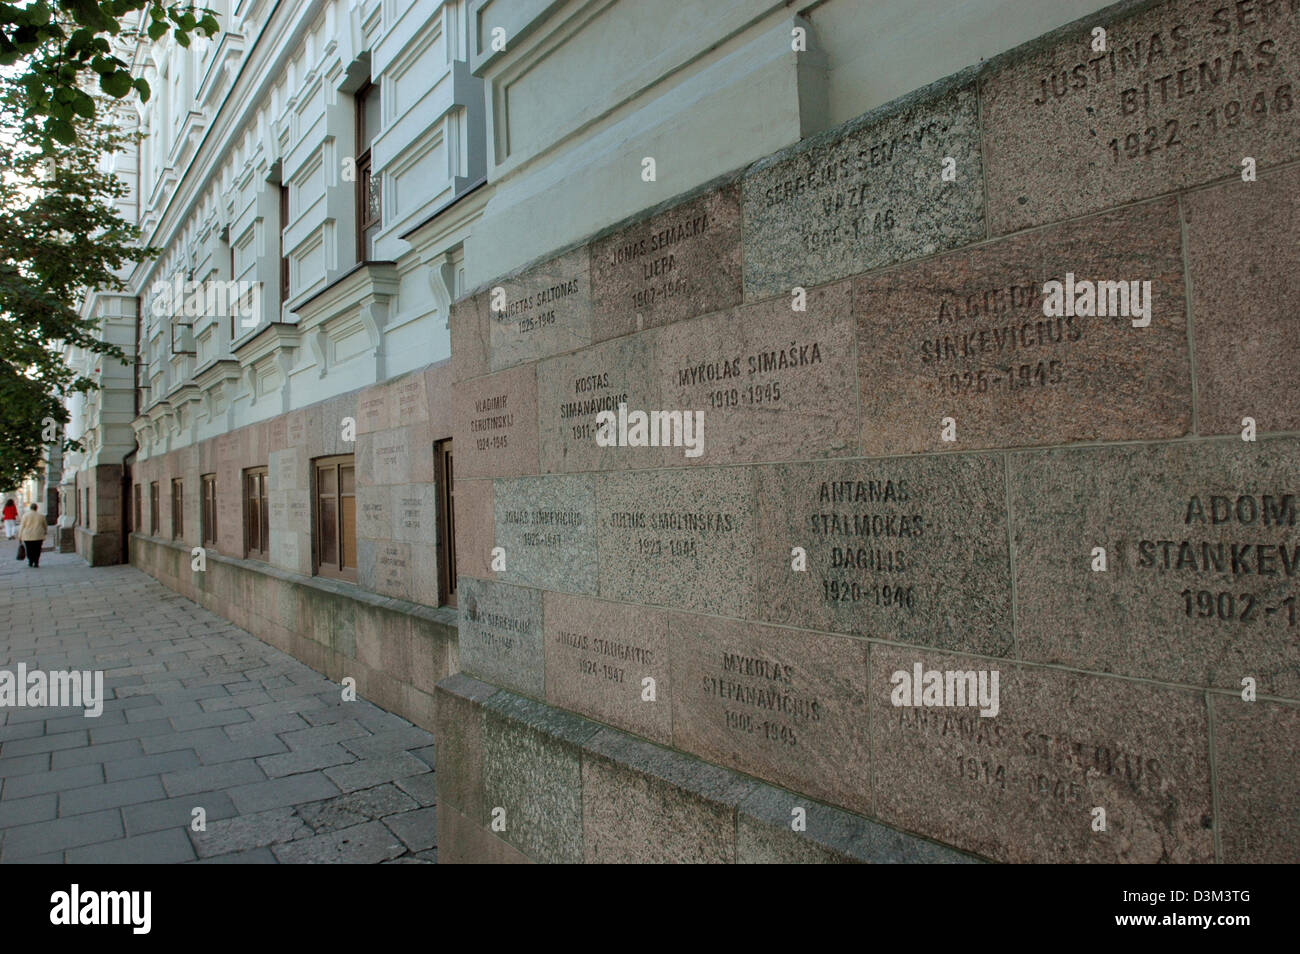 (dpa) - The picture shows the former KGB building in the main street Gedimino Prospekt in Vilnius, Lithuania, 2 - Stock Image